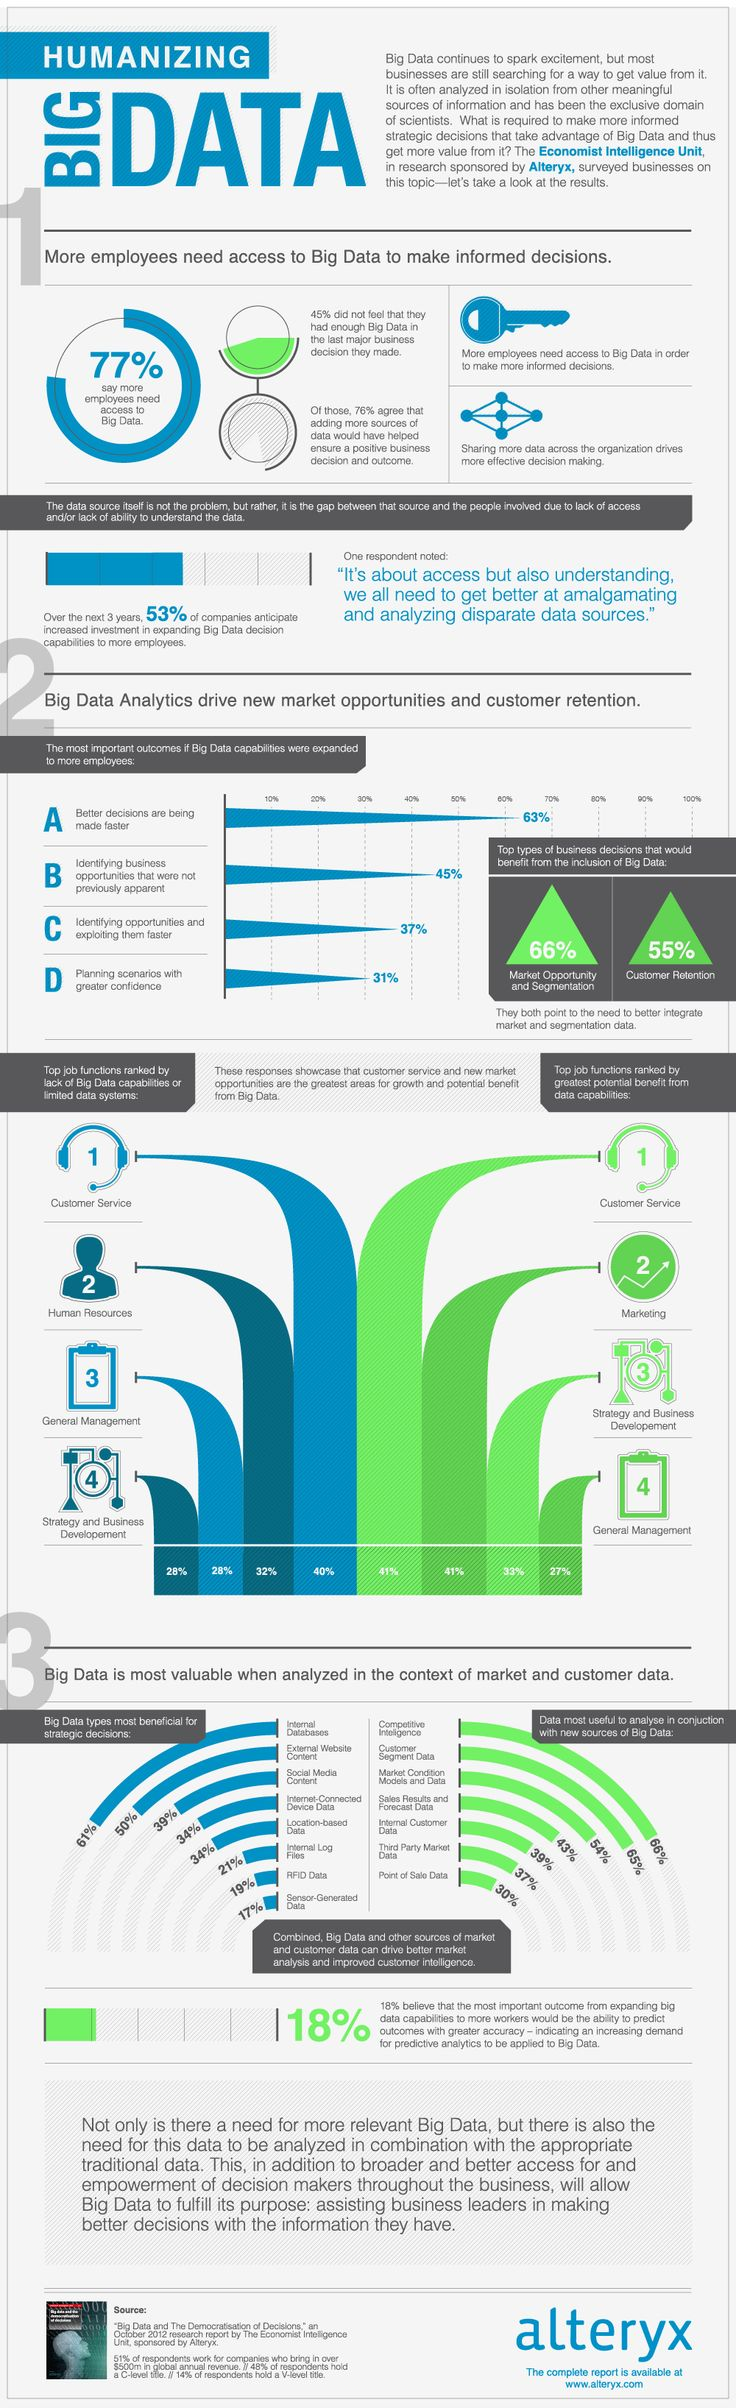 Humanizing Big Data Infographic highlights the need to enable more employees with access to Big Data and the ability to analyze it in the context with other relevant data. These findings are based on a new global survey conducted by the Economist Intelligence Unit and Alteryx.